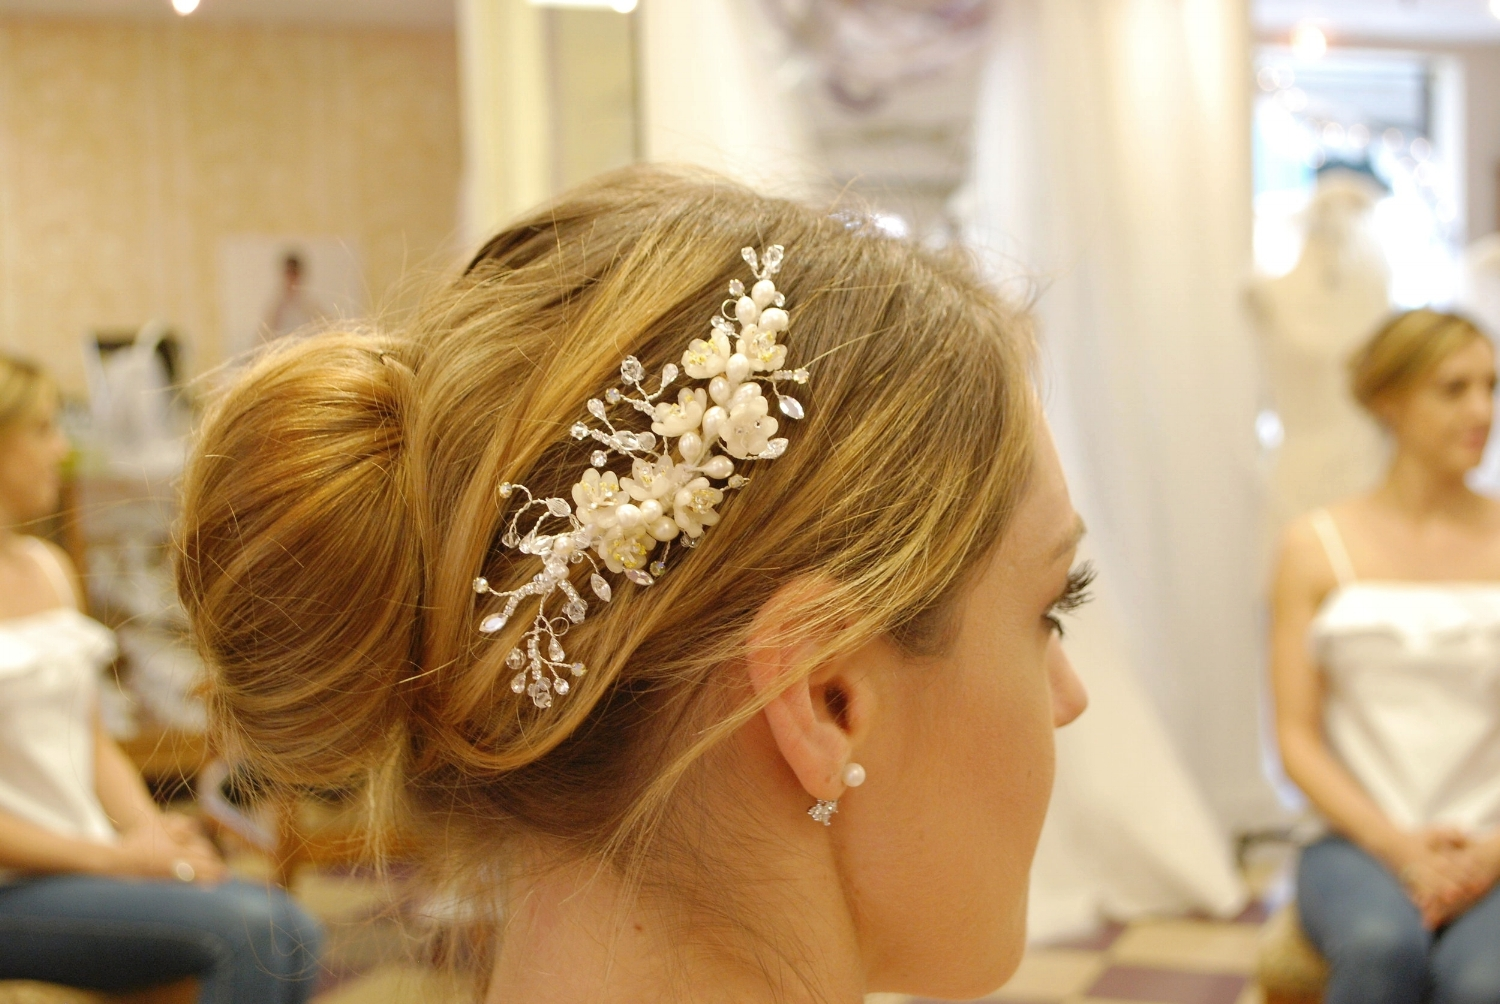 Jen came to pick her up headpiece the week she was leaving to go back home to the U.K. for her wedding.